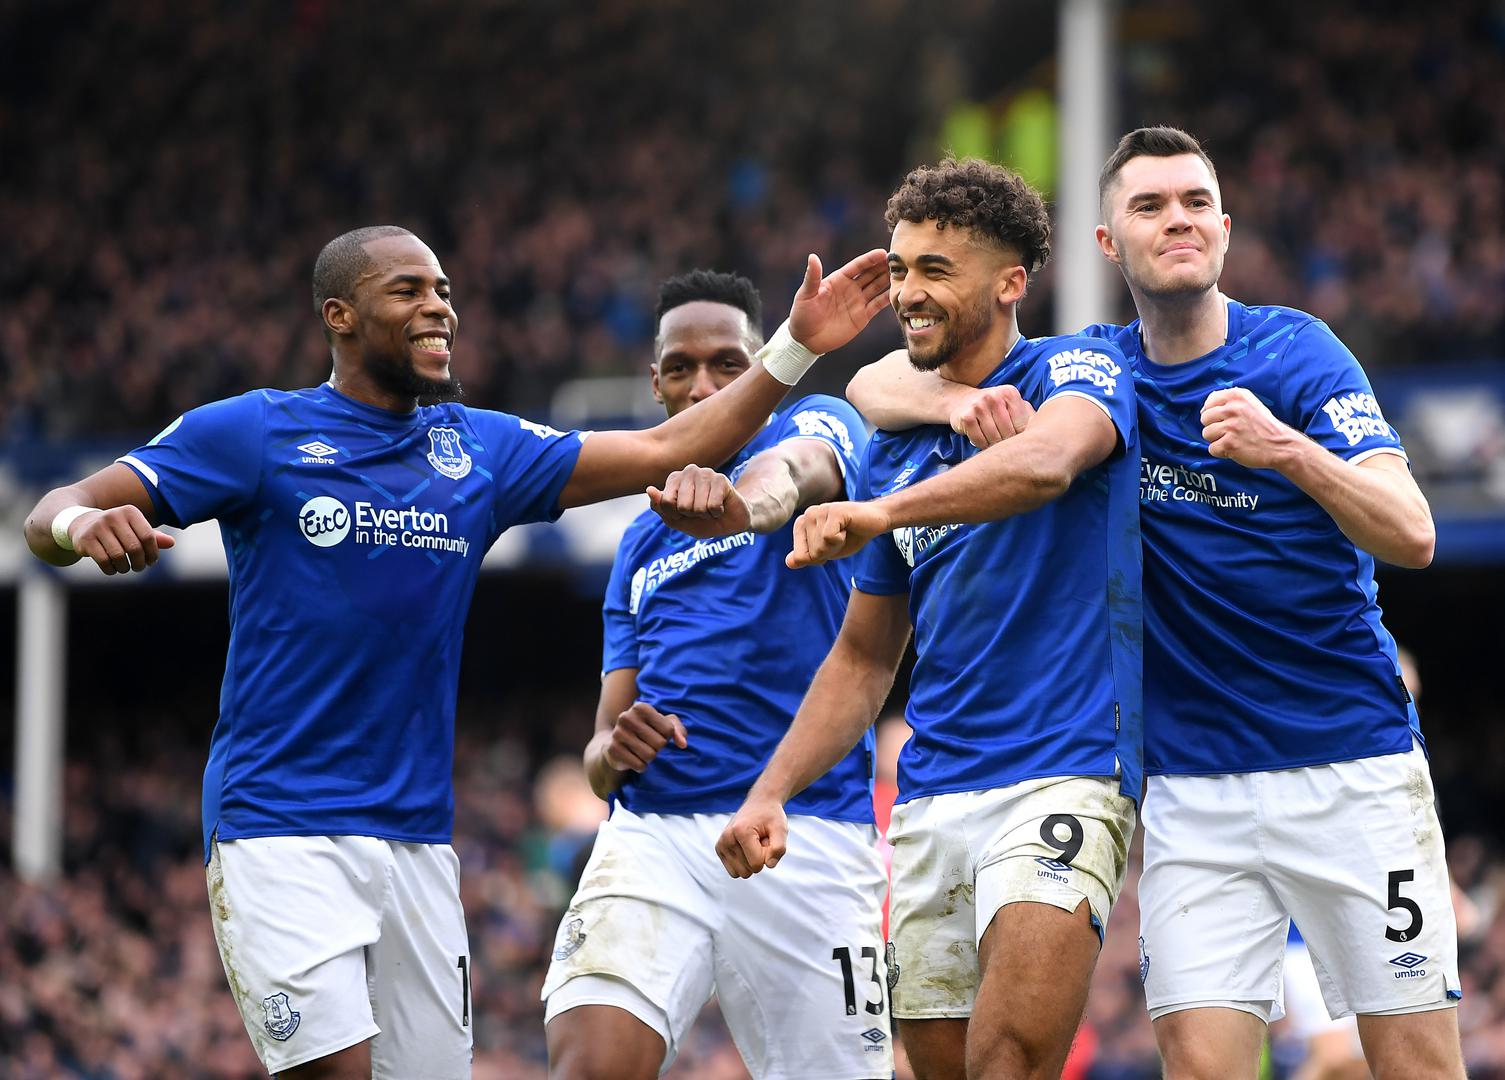 Dominic Calvert-Lewin celebrates his goal against Crystal Palace in the Premier League